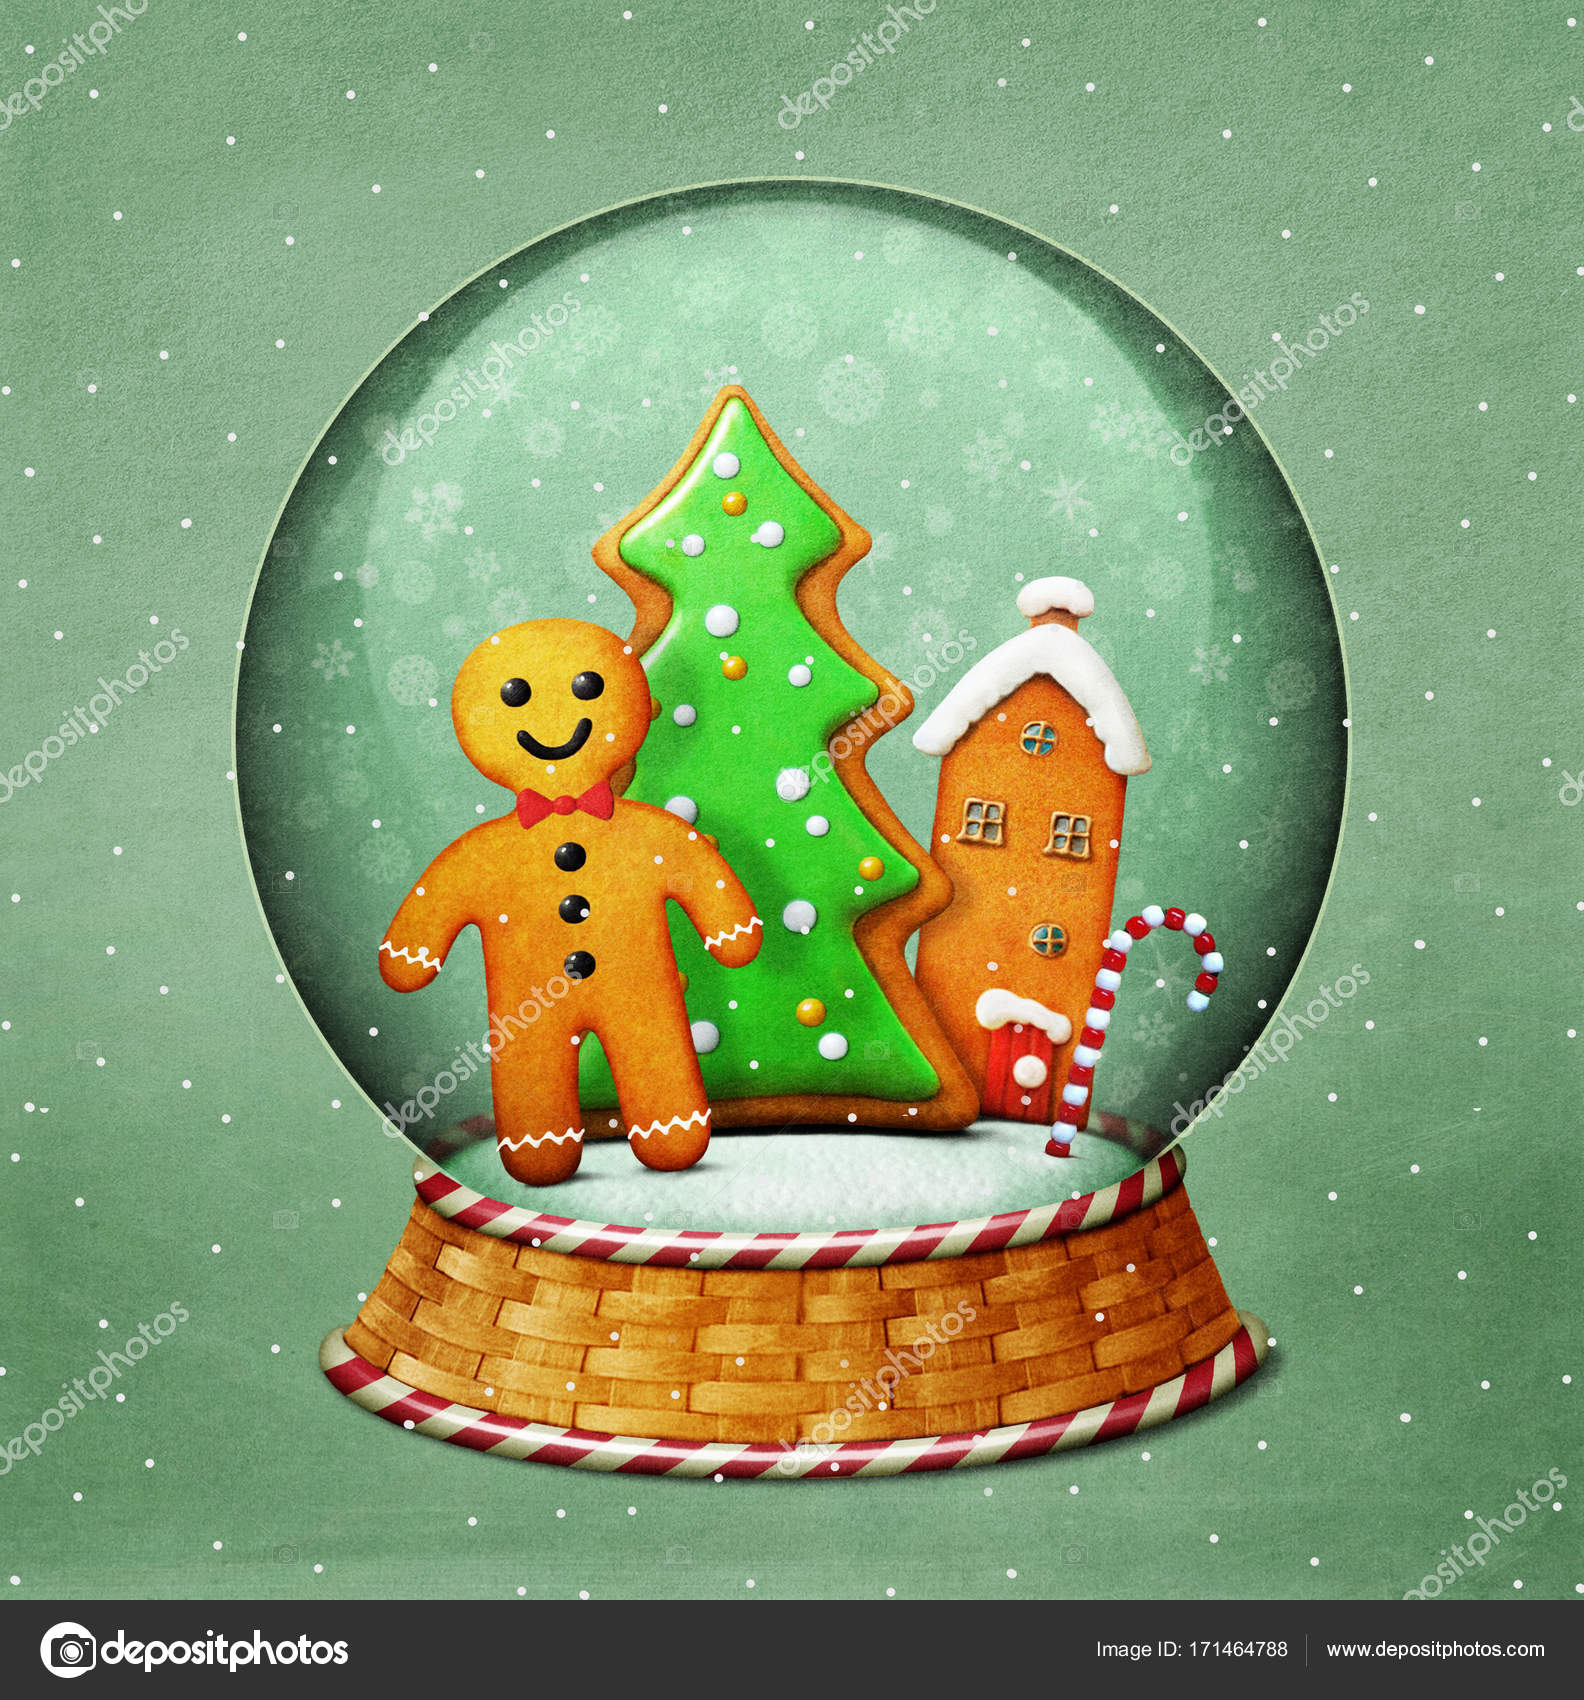 Snow Globe And Gingerbread Christmas Cookie Stock Photo C Annmei